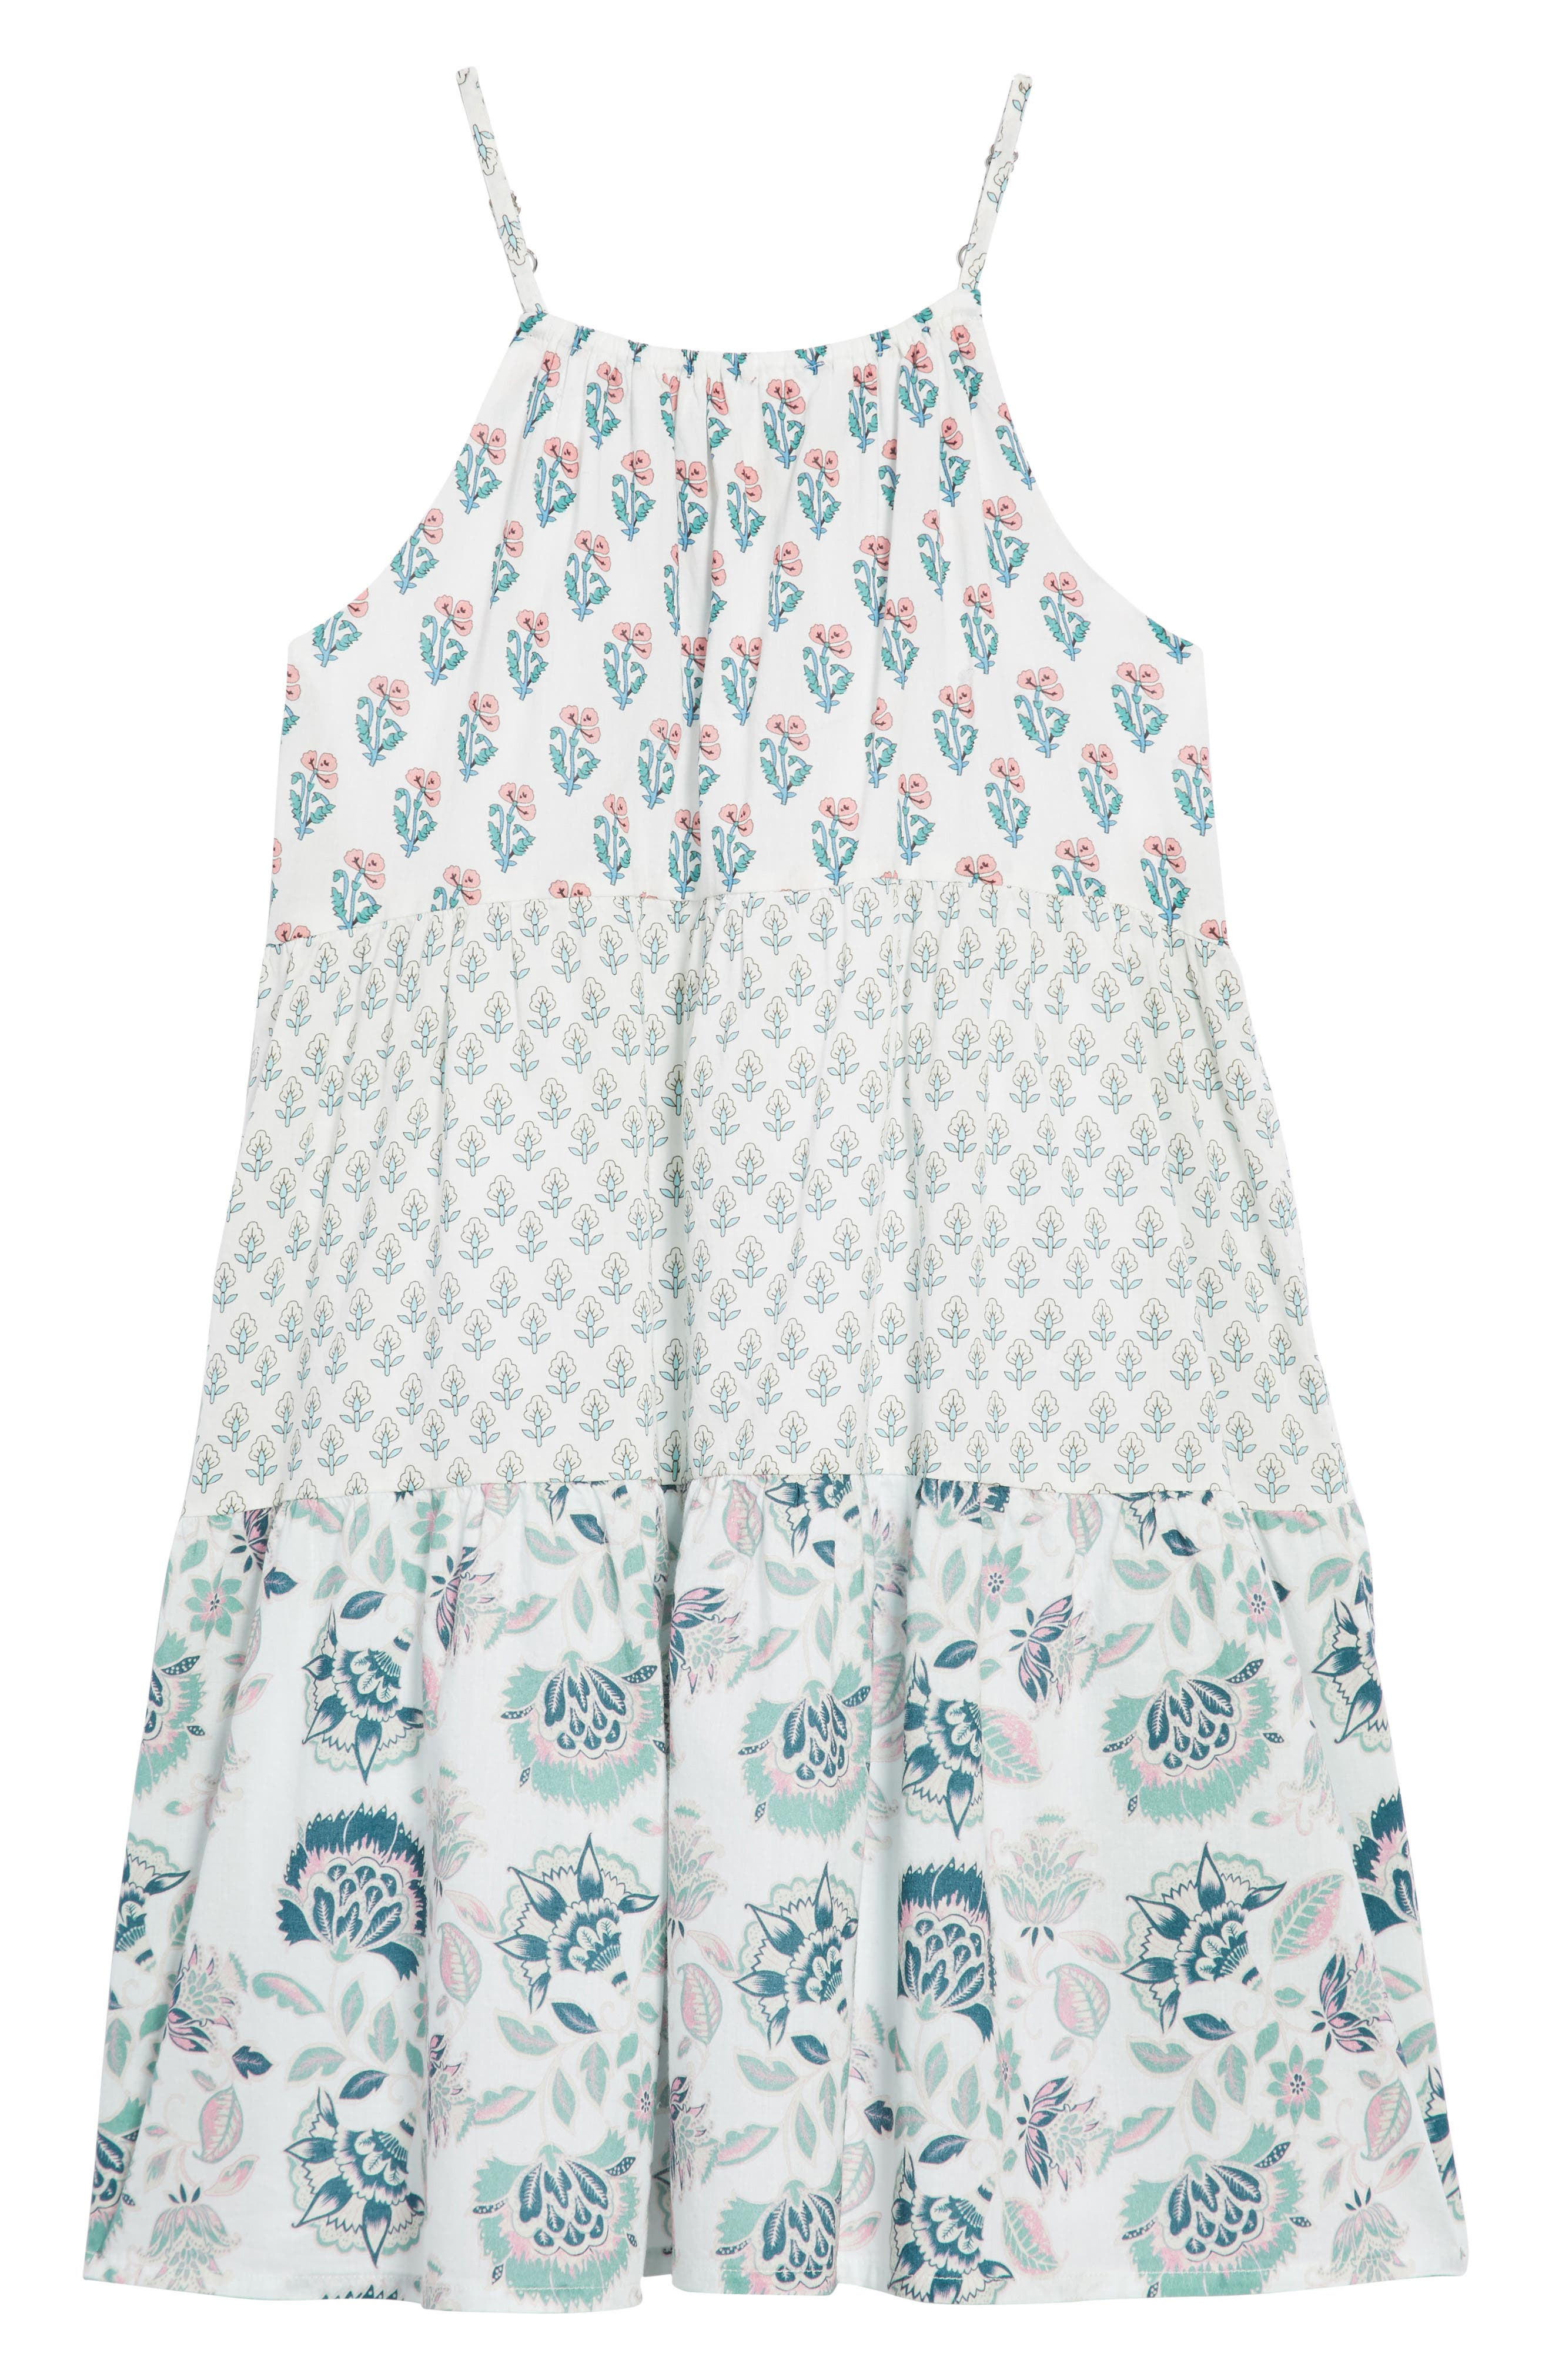 Lucy Dress,                             Main thumbnail 1, color,                             White